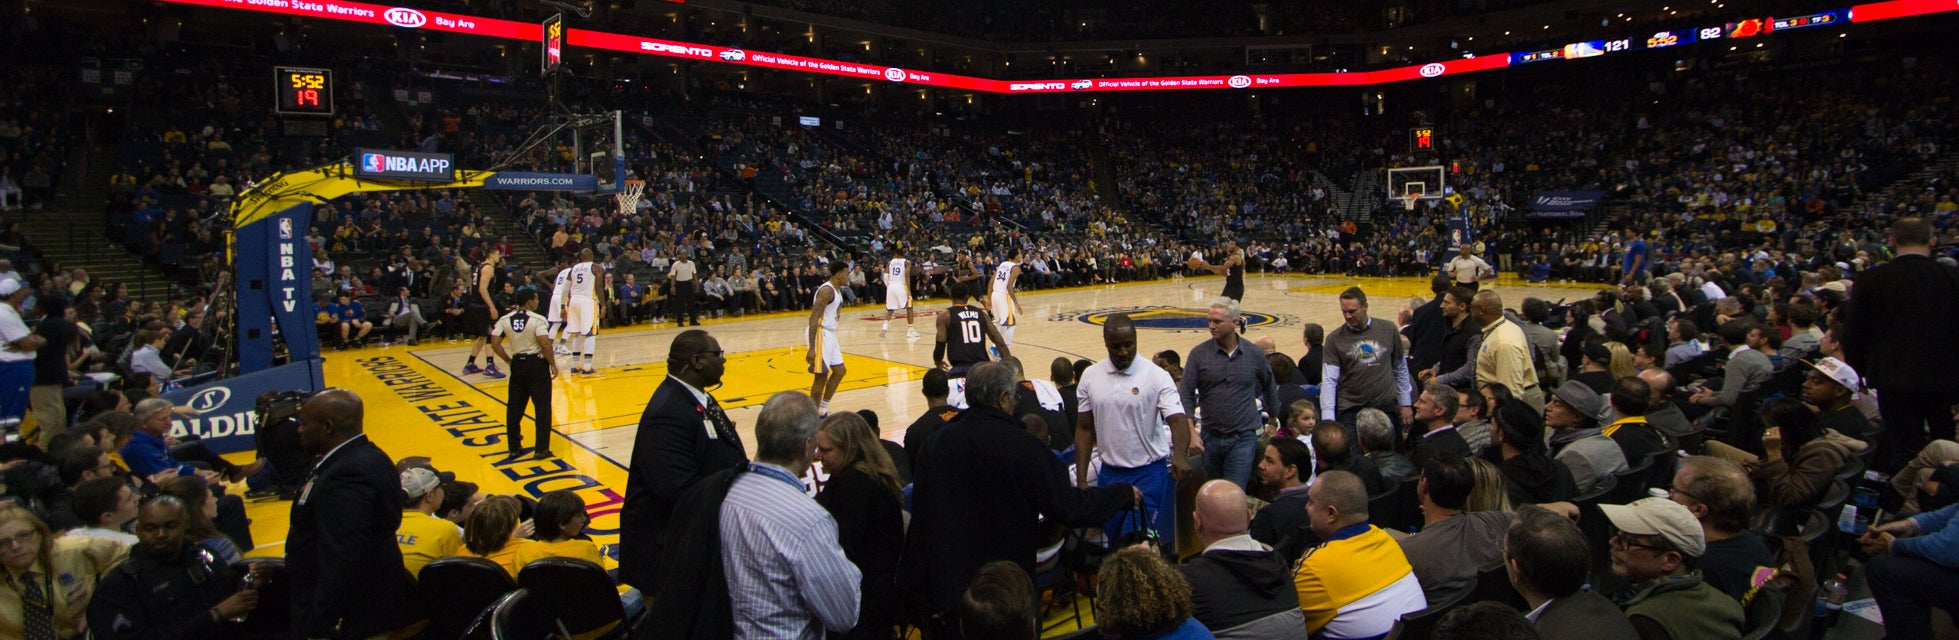 Seat view from Courtside Baseline